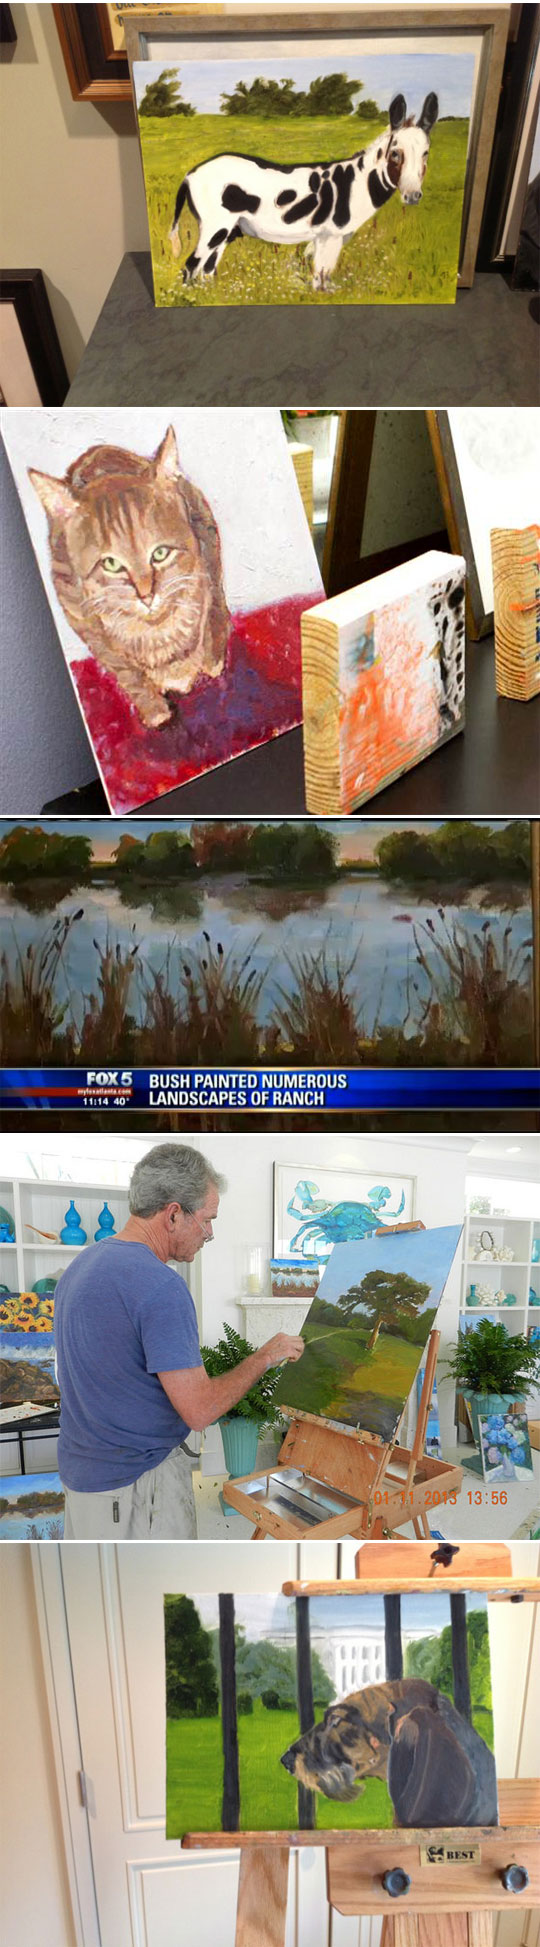 funny-George-Bush-painting-artist-canvas